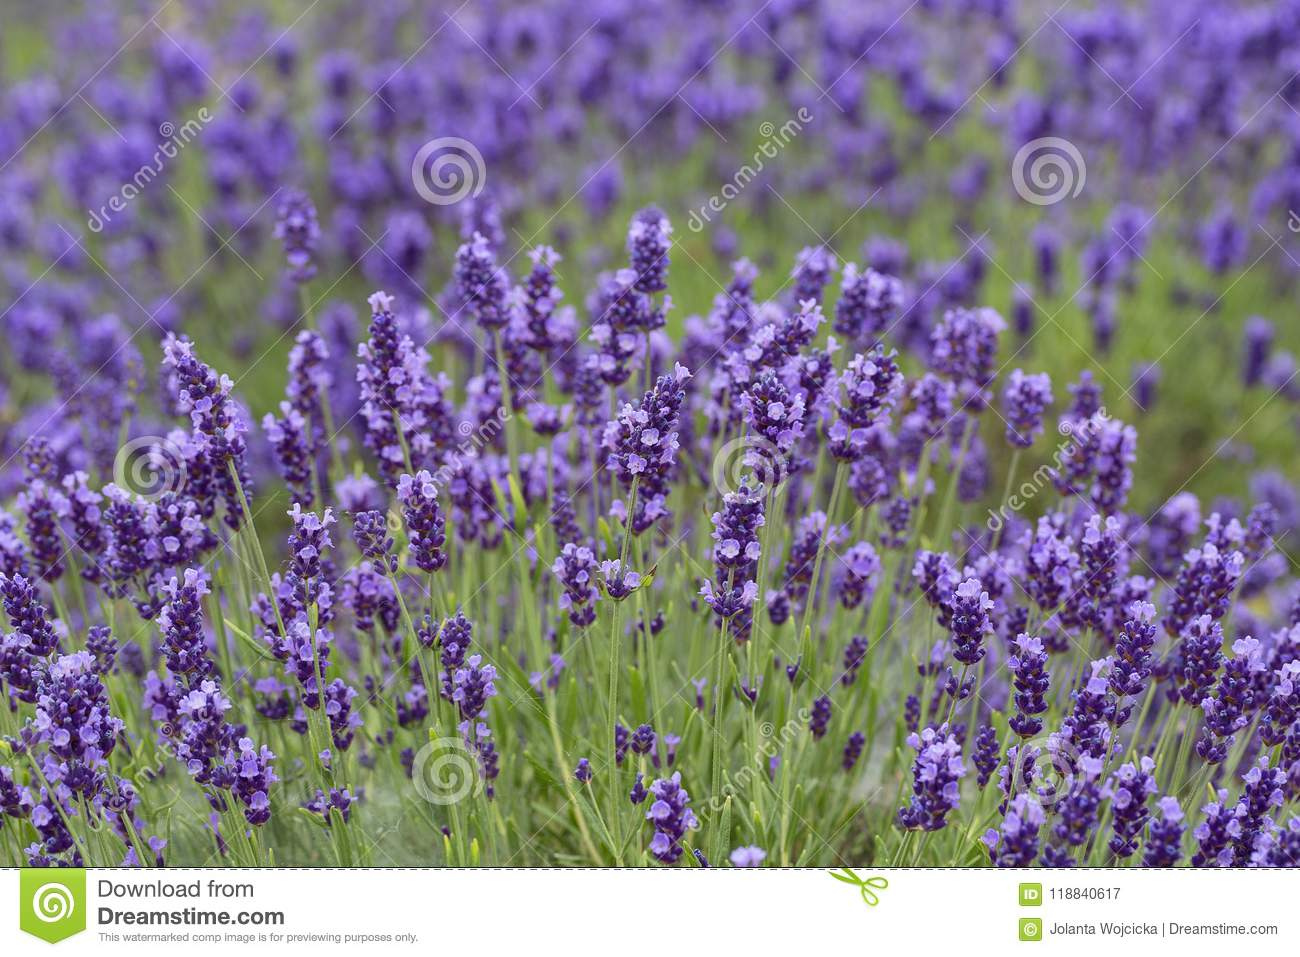 Lavender flowers blooming in the garden beautiful lavender field lavender flowers blooming in the garden beautiful lavender field izmirmasajfo